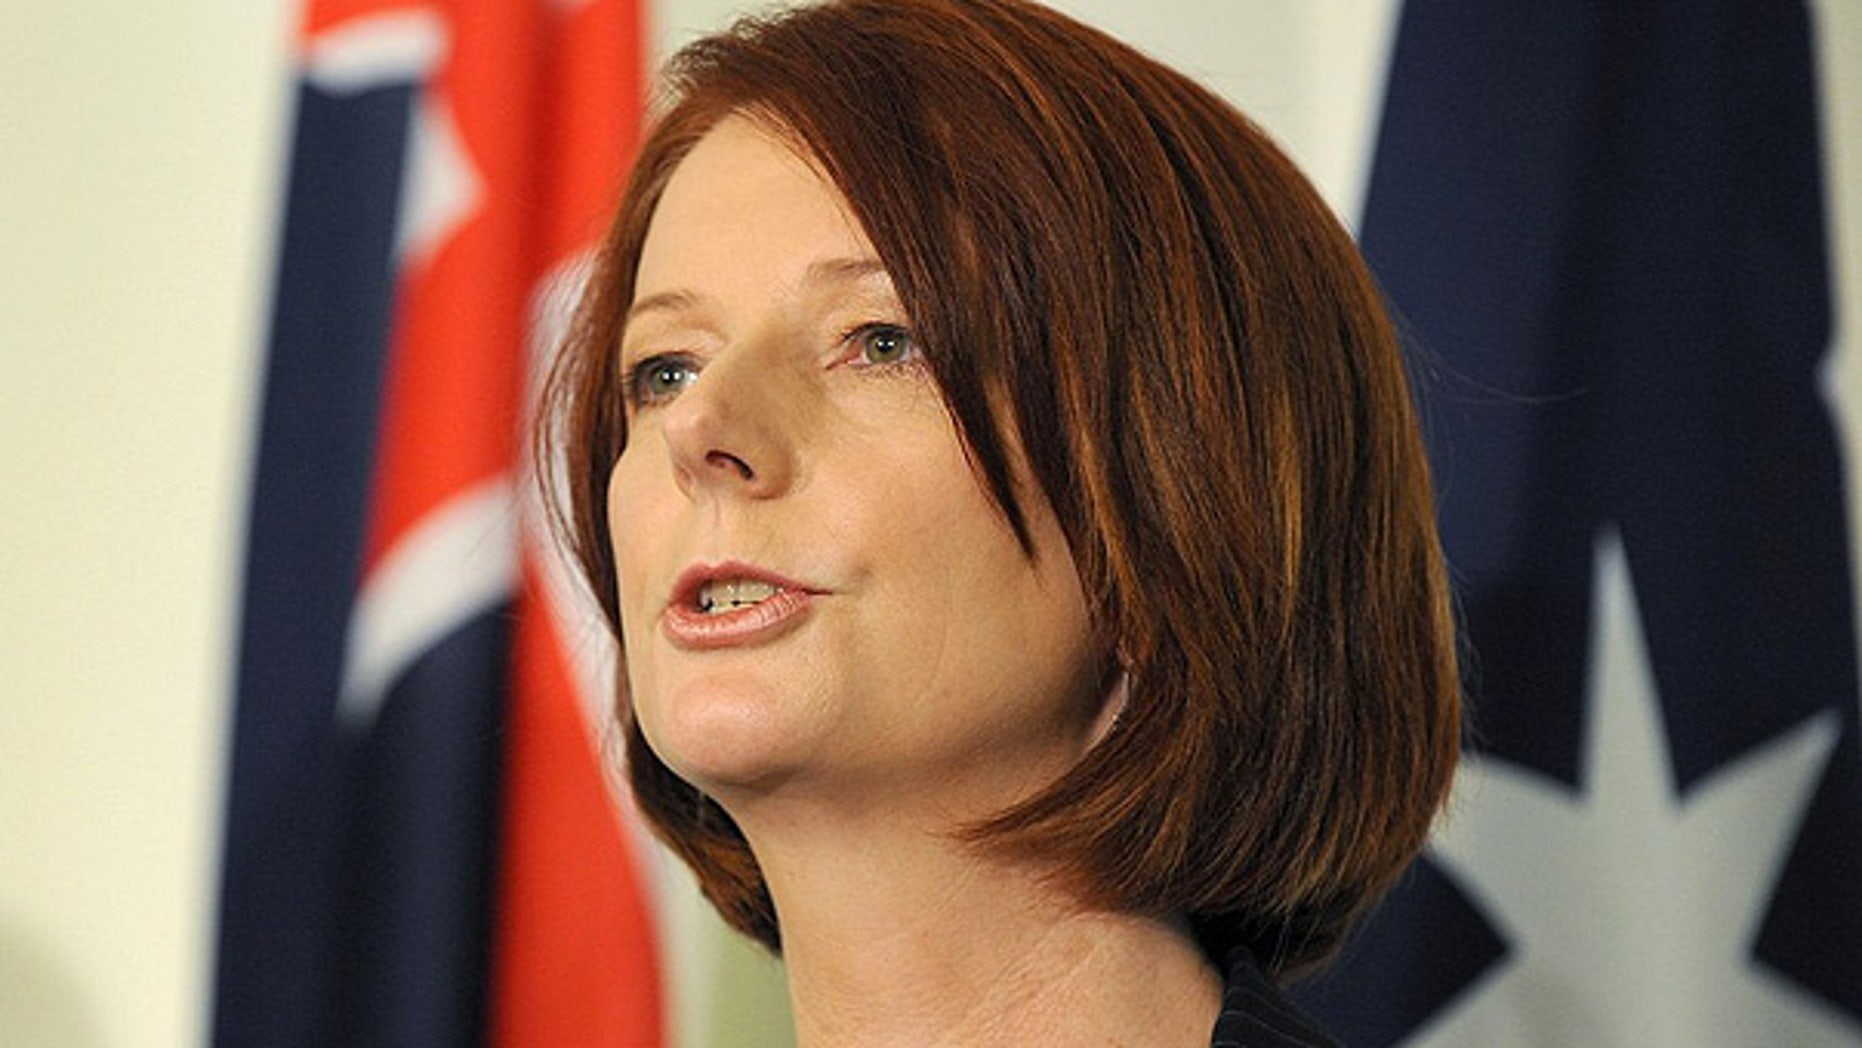 June 24: Australia's new prime minister Julia Gillard speaks during a press conference, in Canberra.